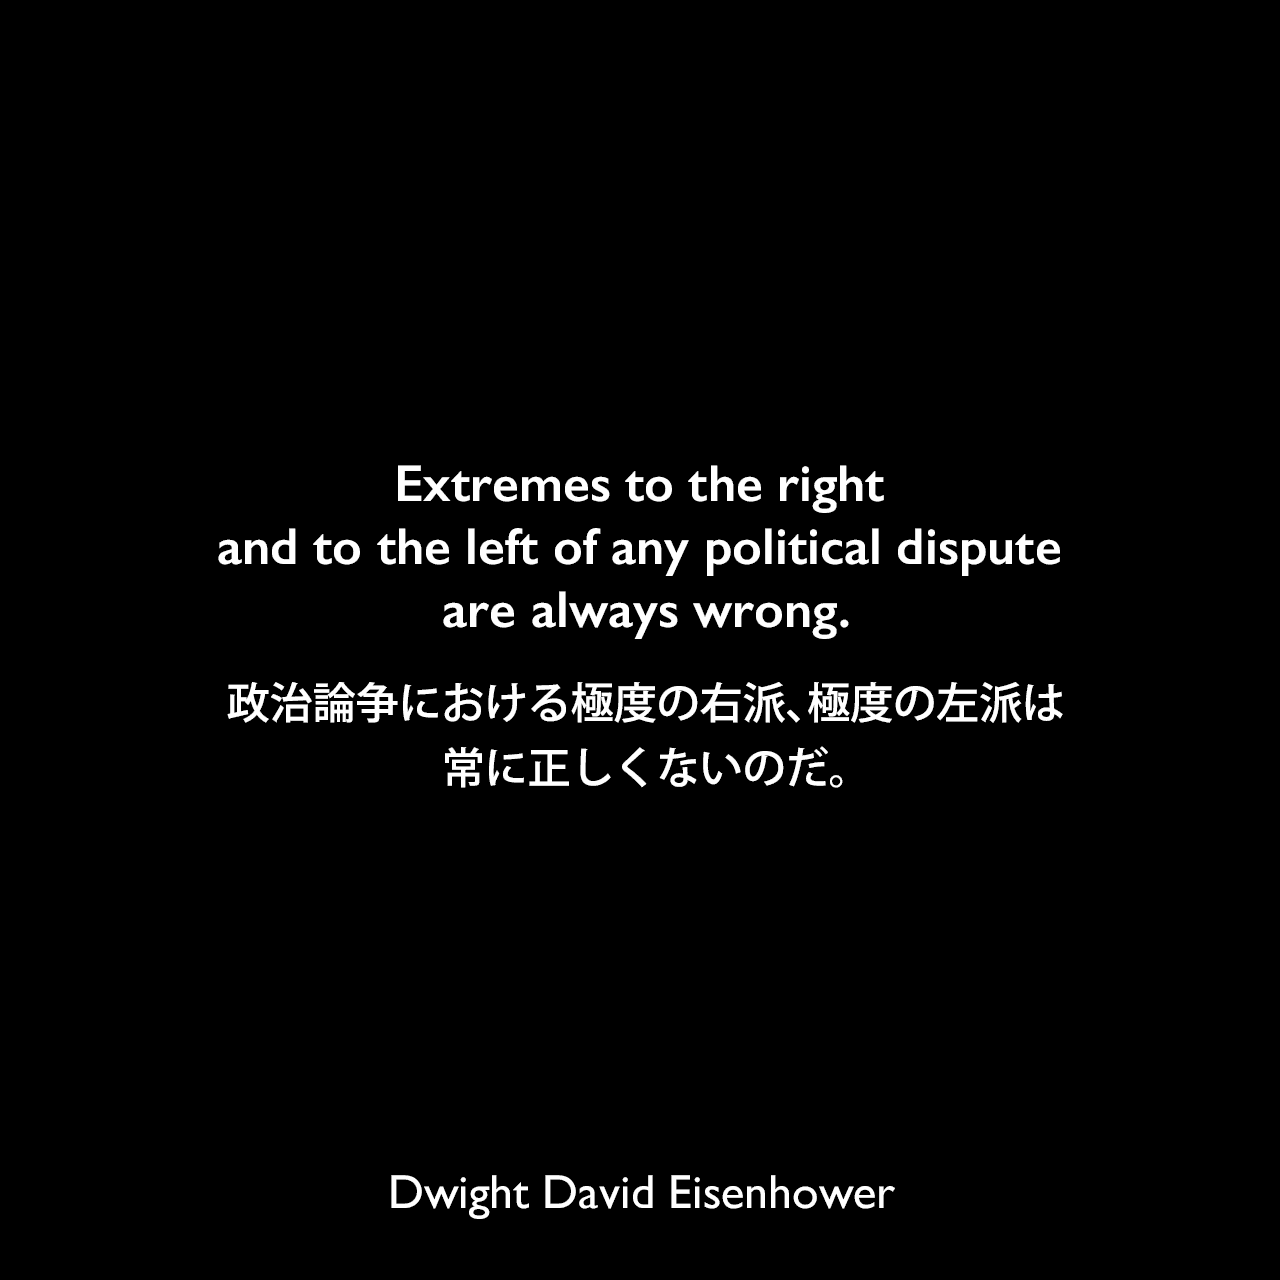 Extremes to the right and to the left of any political dispute are always wrong.政治論争における極度の右派、極度の左派は、常に正しくないのだ。Dwight David Eisenhower